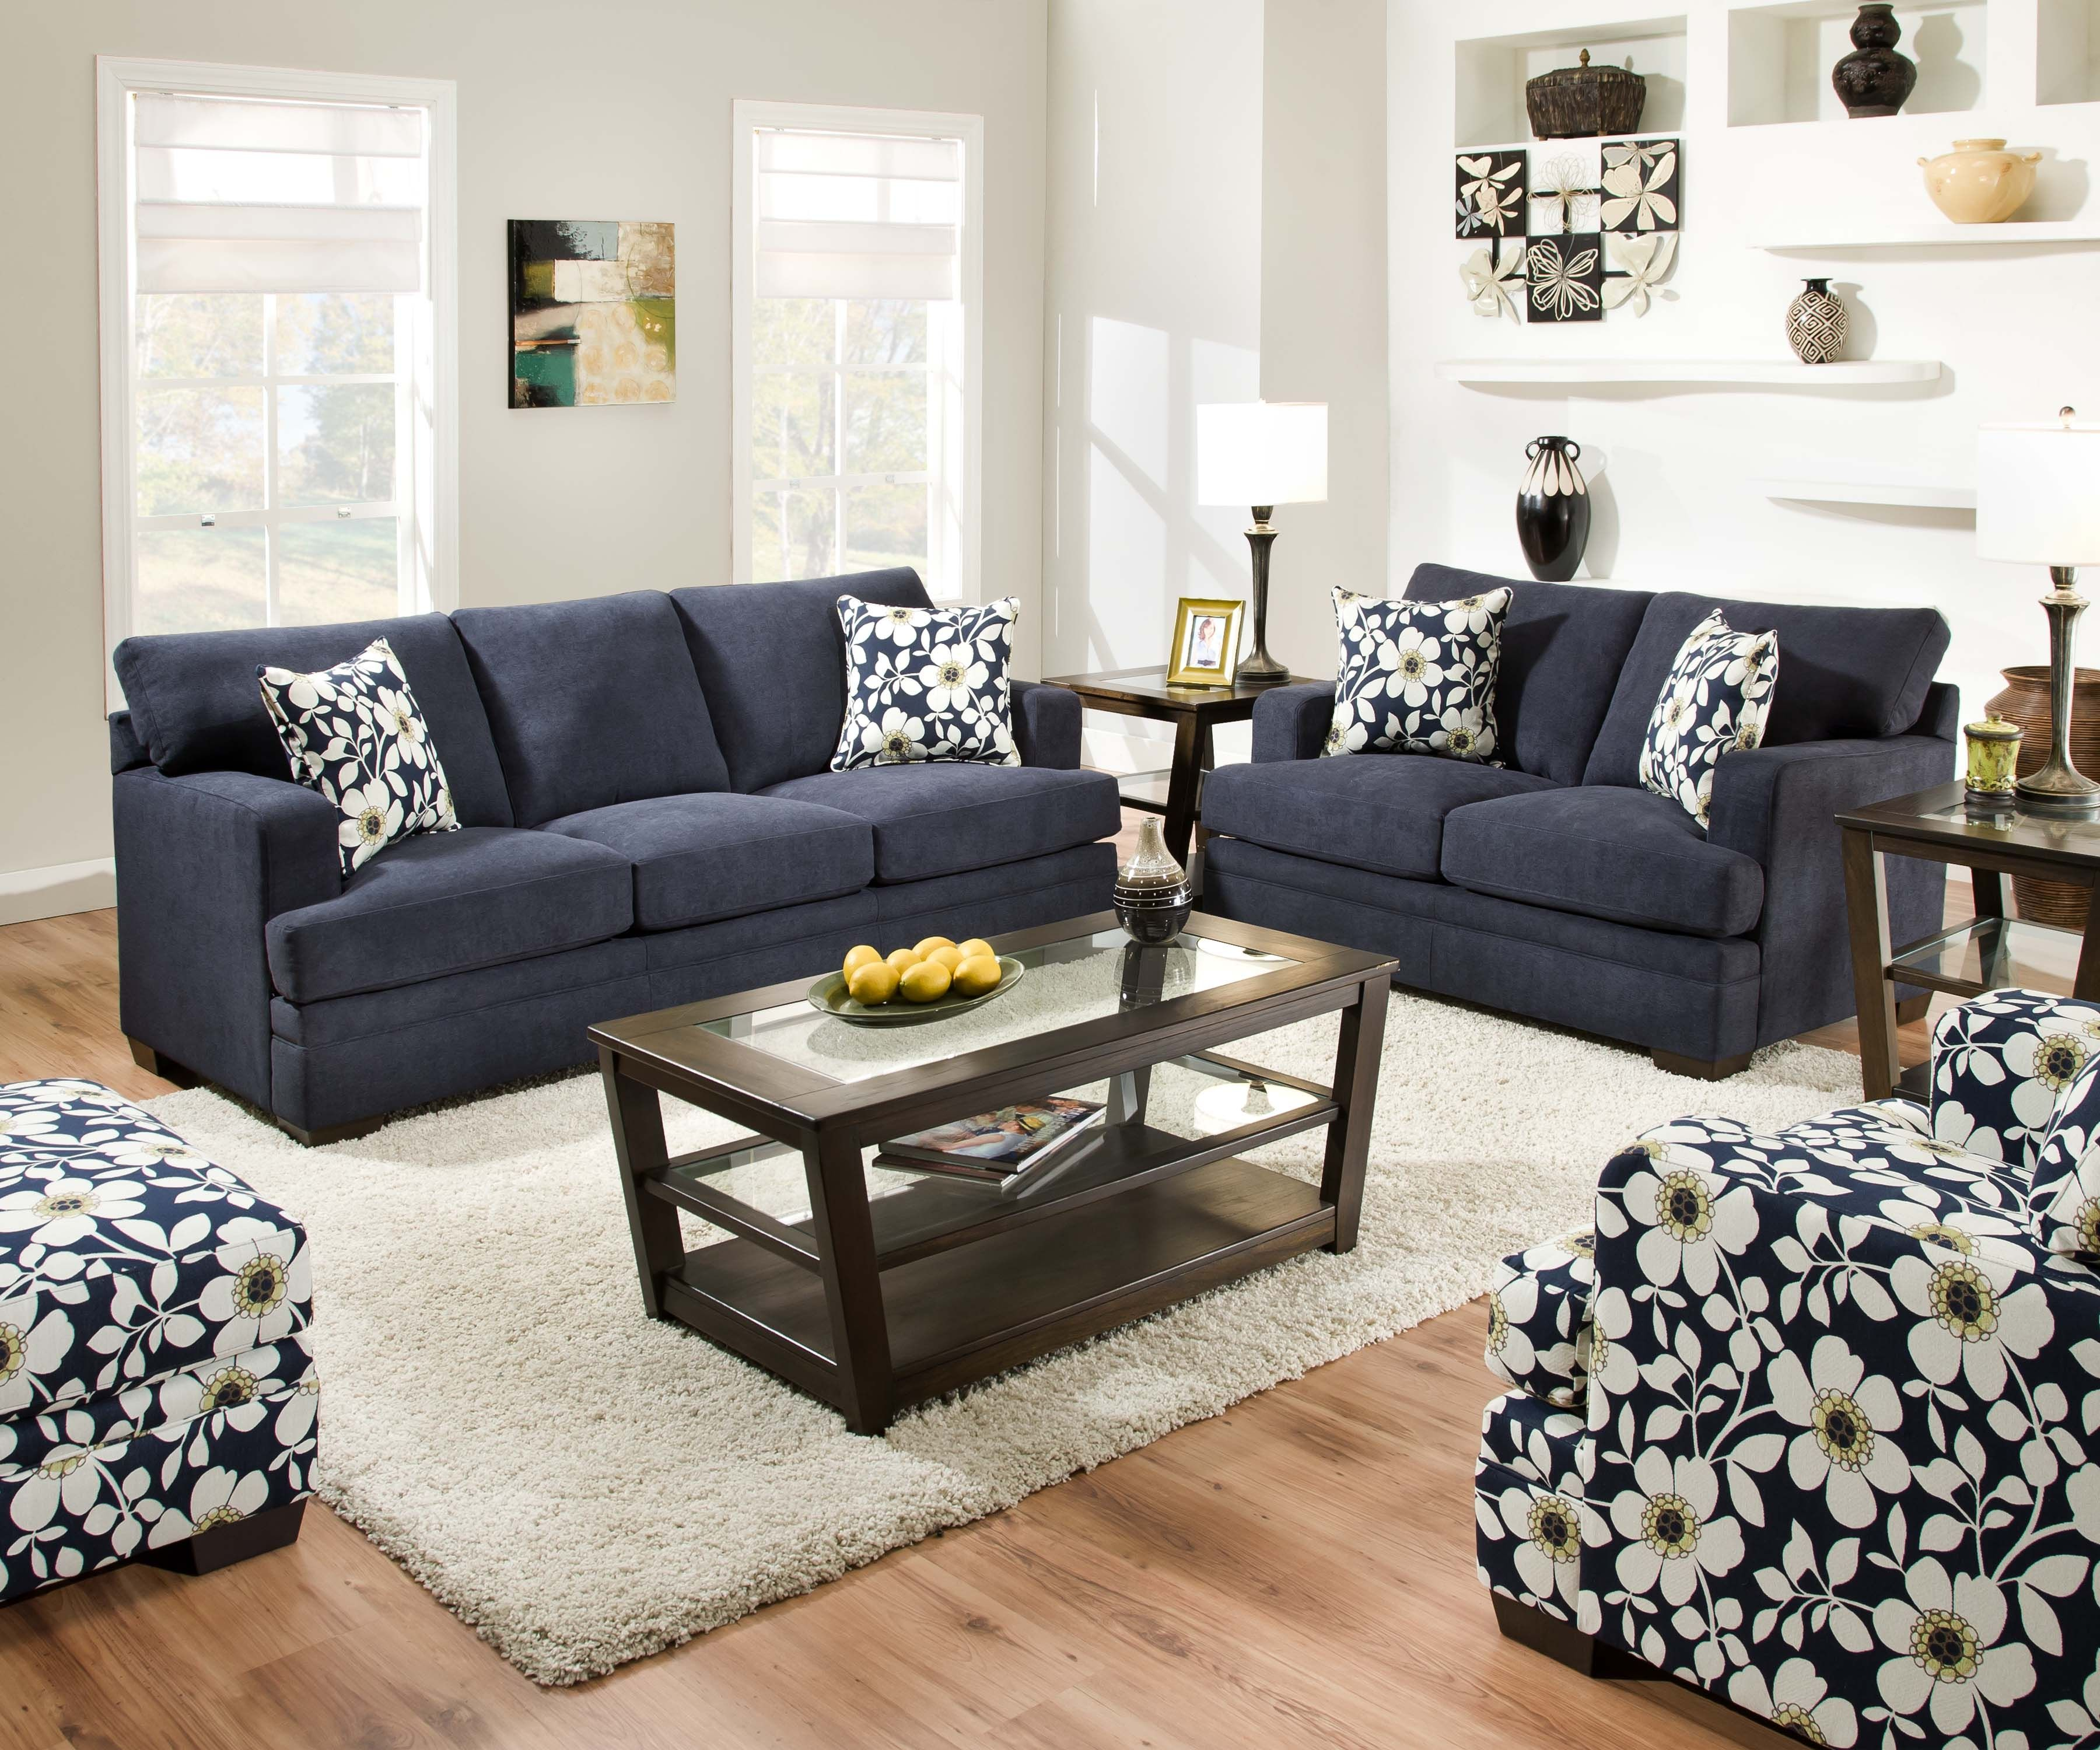 Simmons Upholstery 6491s Chicklet Sofa Midnight Blue Sears Outlet Colorful Furniture Living Room Furniture White Furniture Living Room